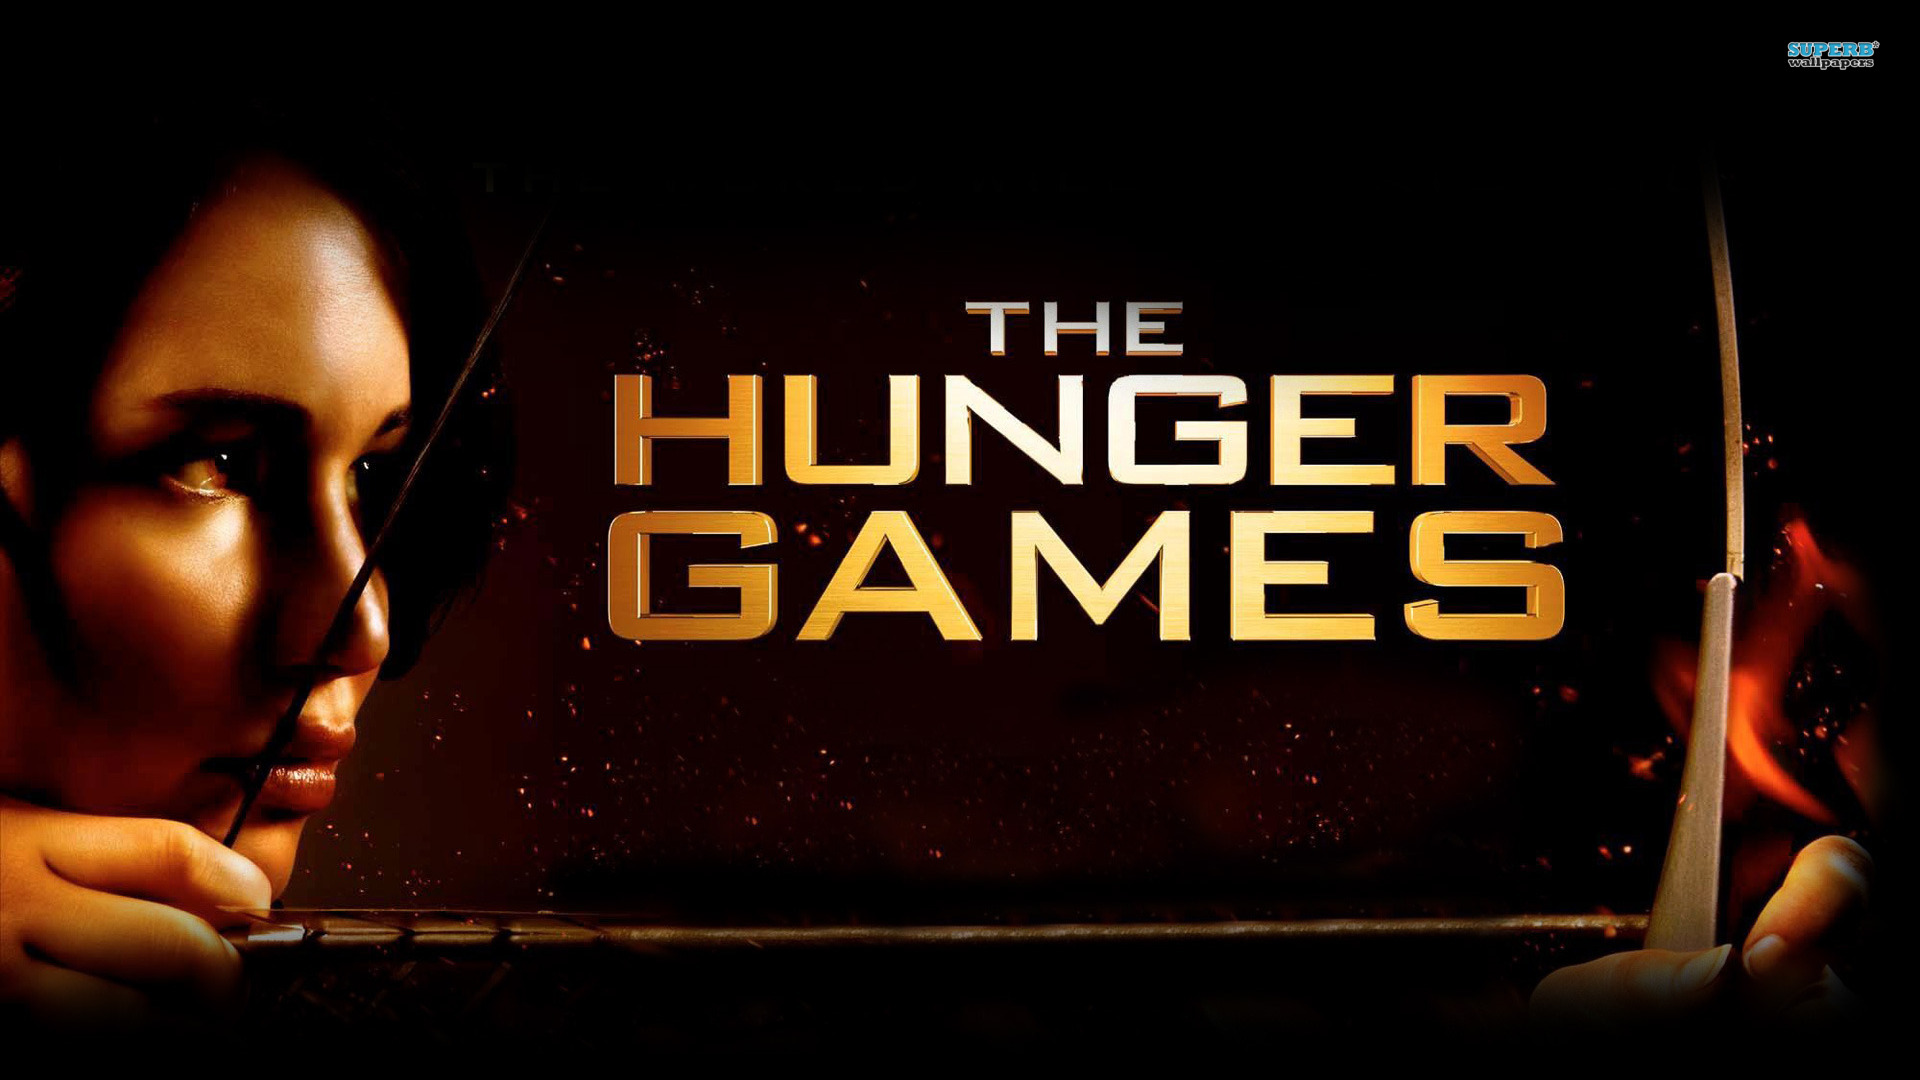 The Hunger Games Wallpaper 1920x1080 54682